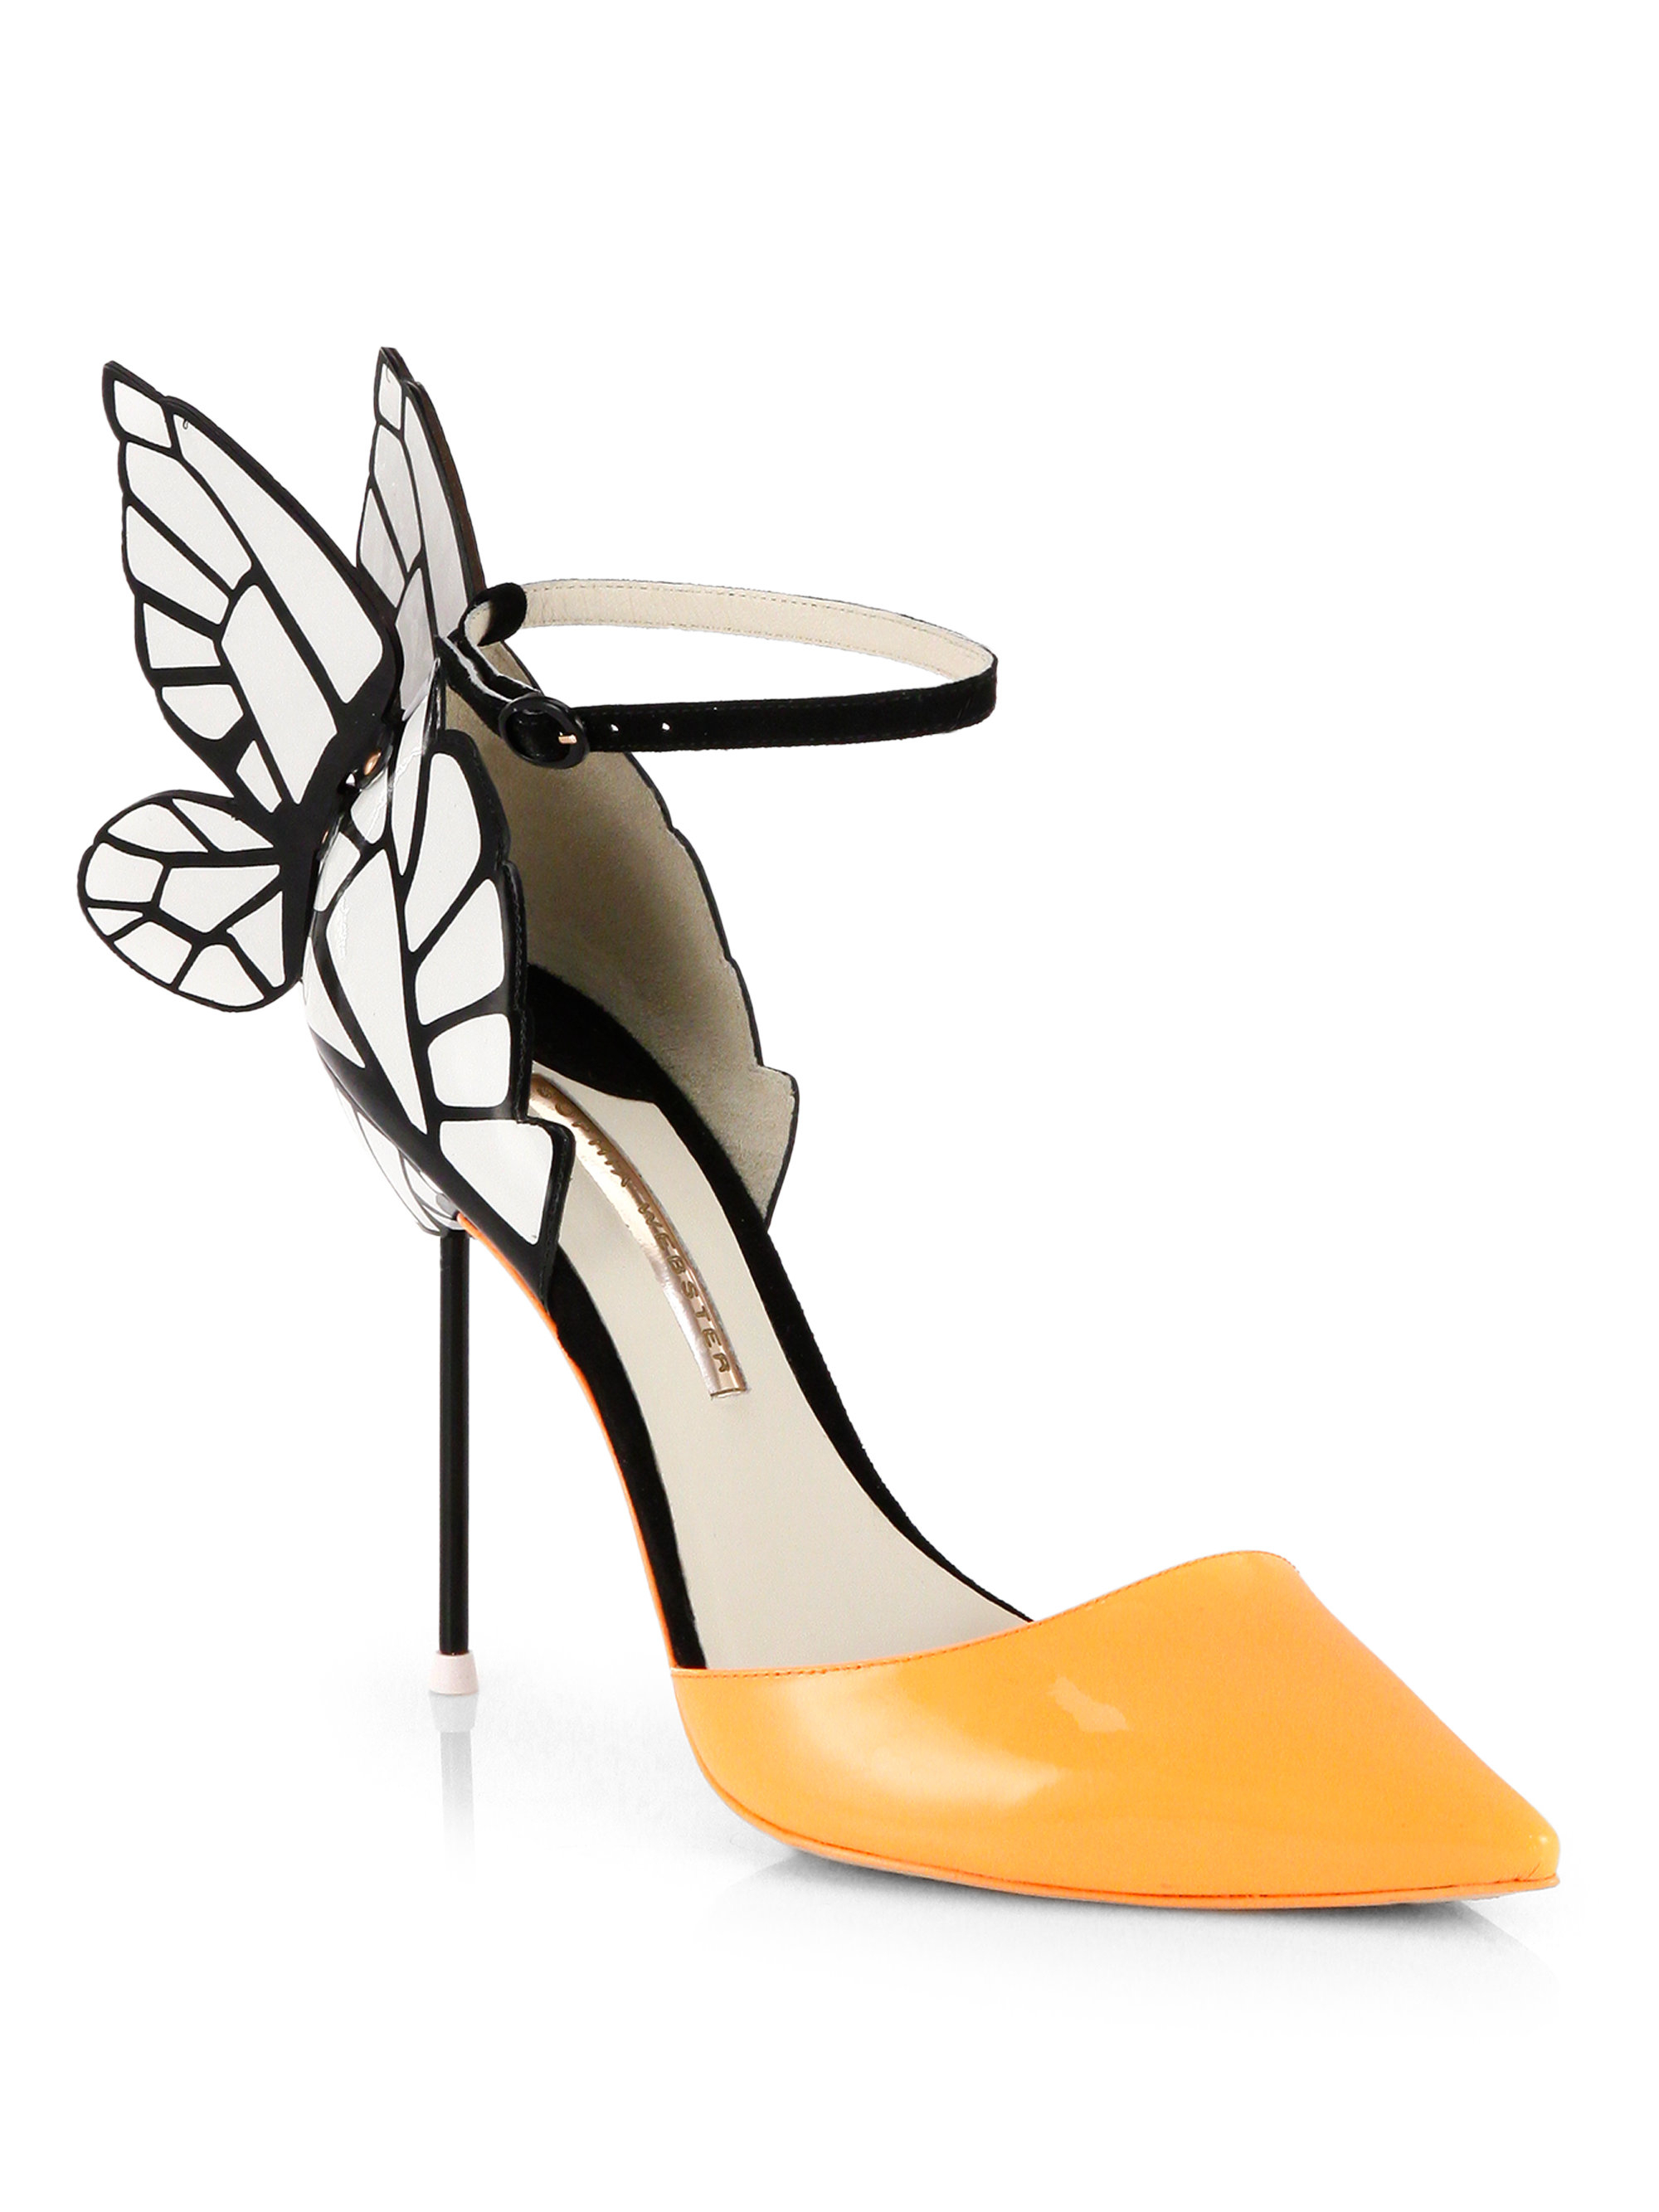 Sophia Webster Clara Patent Leather Butterfly Dorsay Pumps